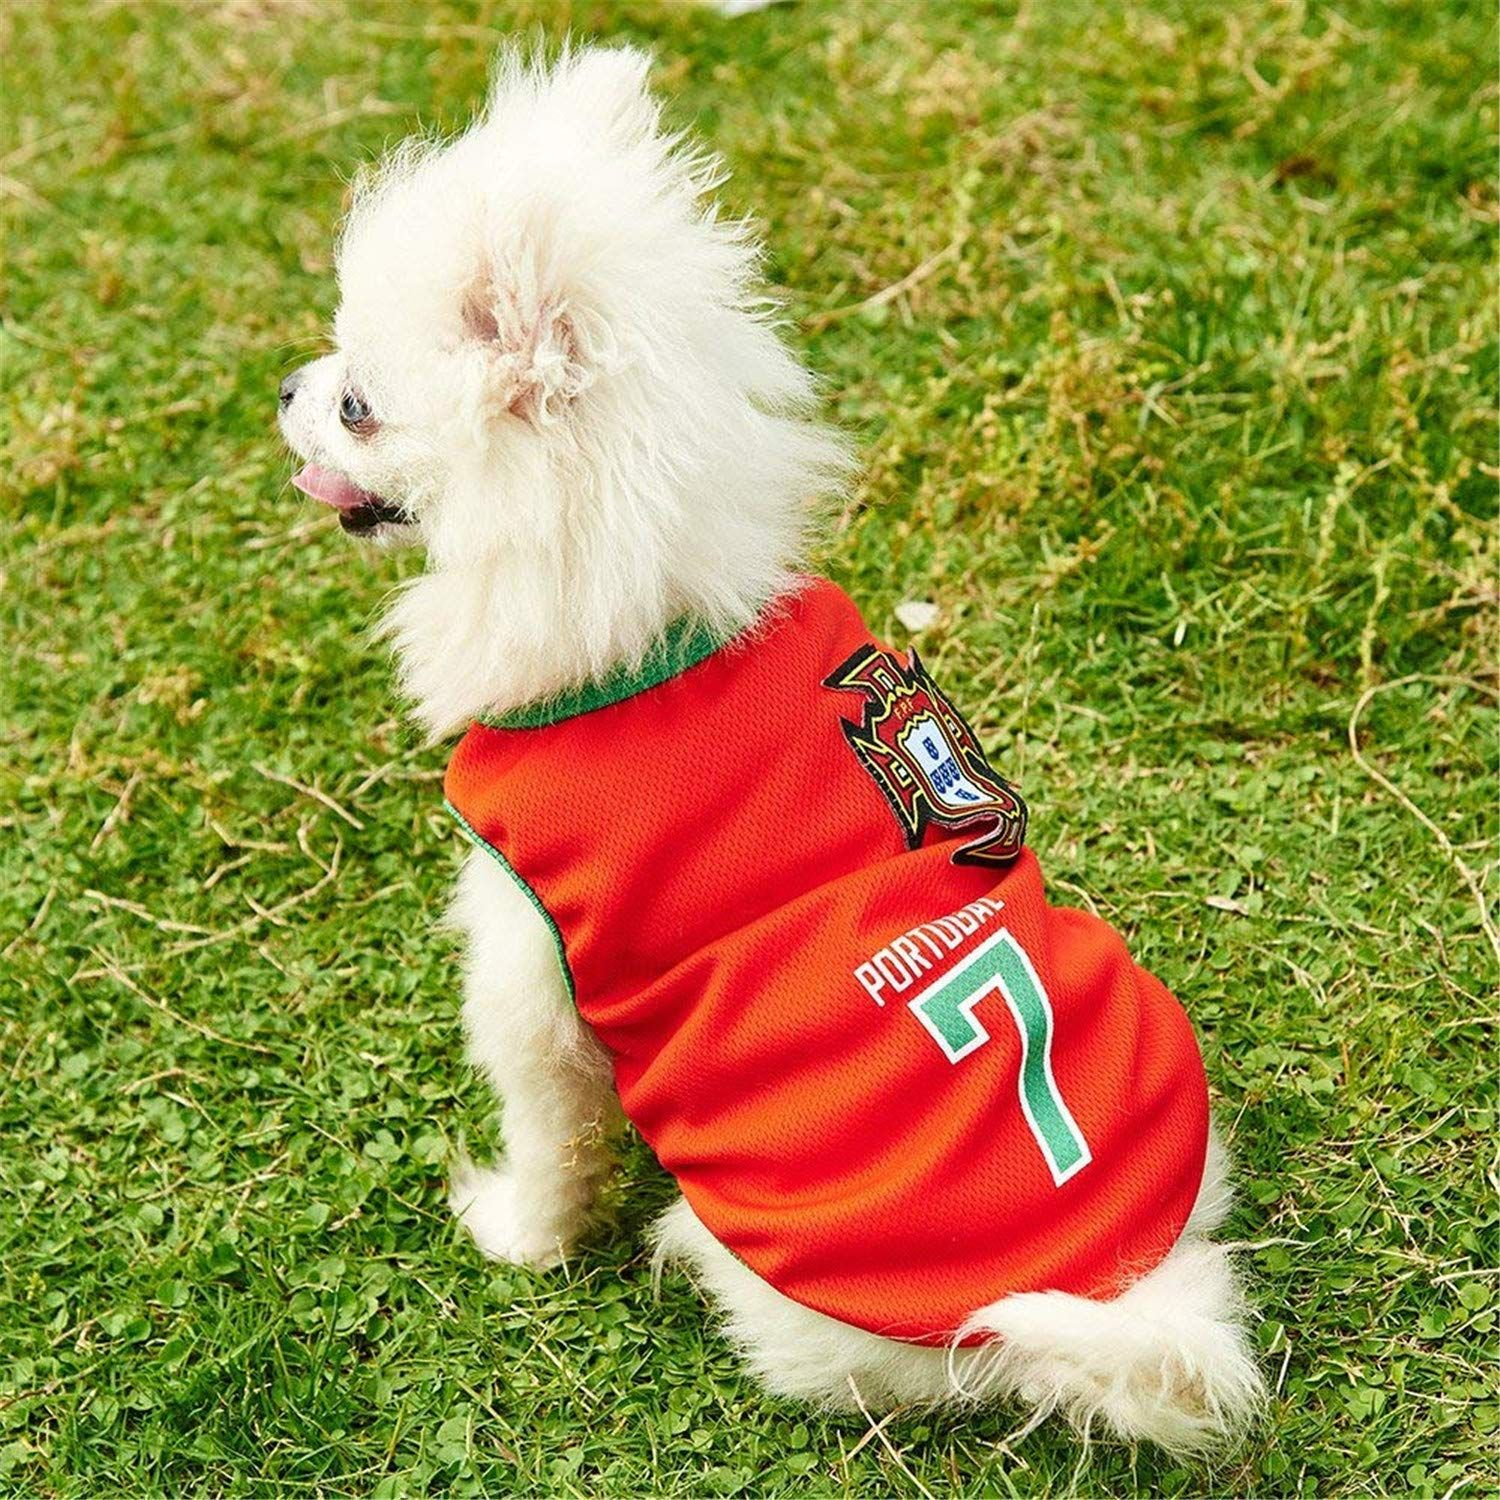 b67113760 Siray World Cup FIFA Spain National Soccer Team Pet Jersey Dogs Costume  Football TShirt Dog Clothes     A lot more information might be discovered  at the ...